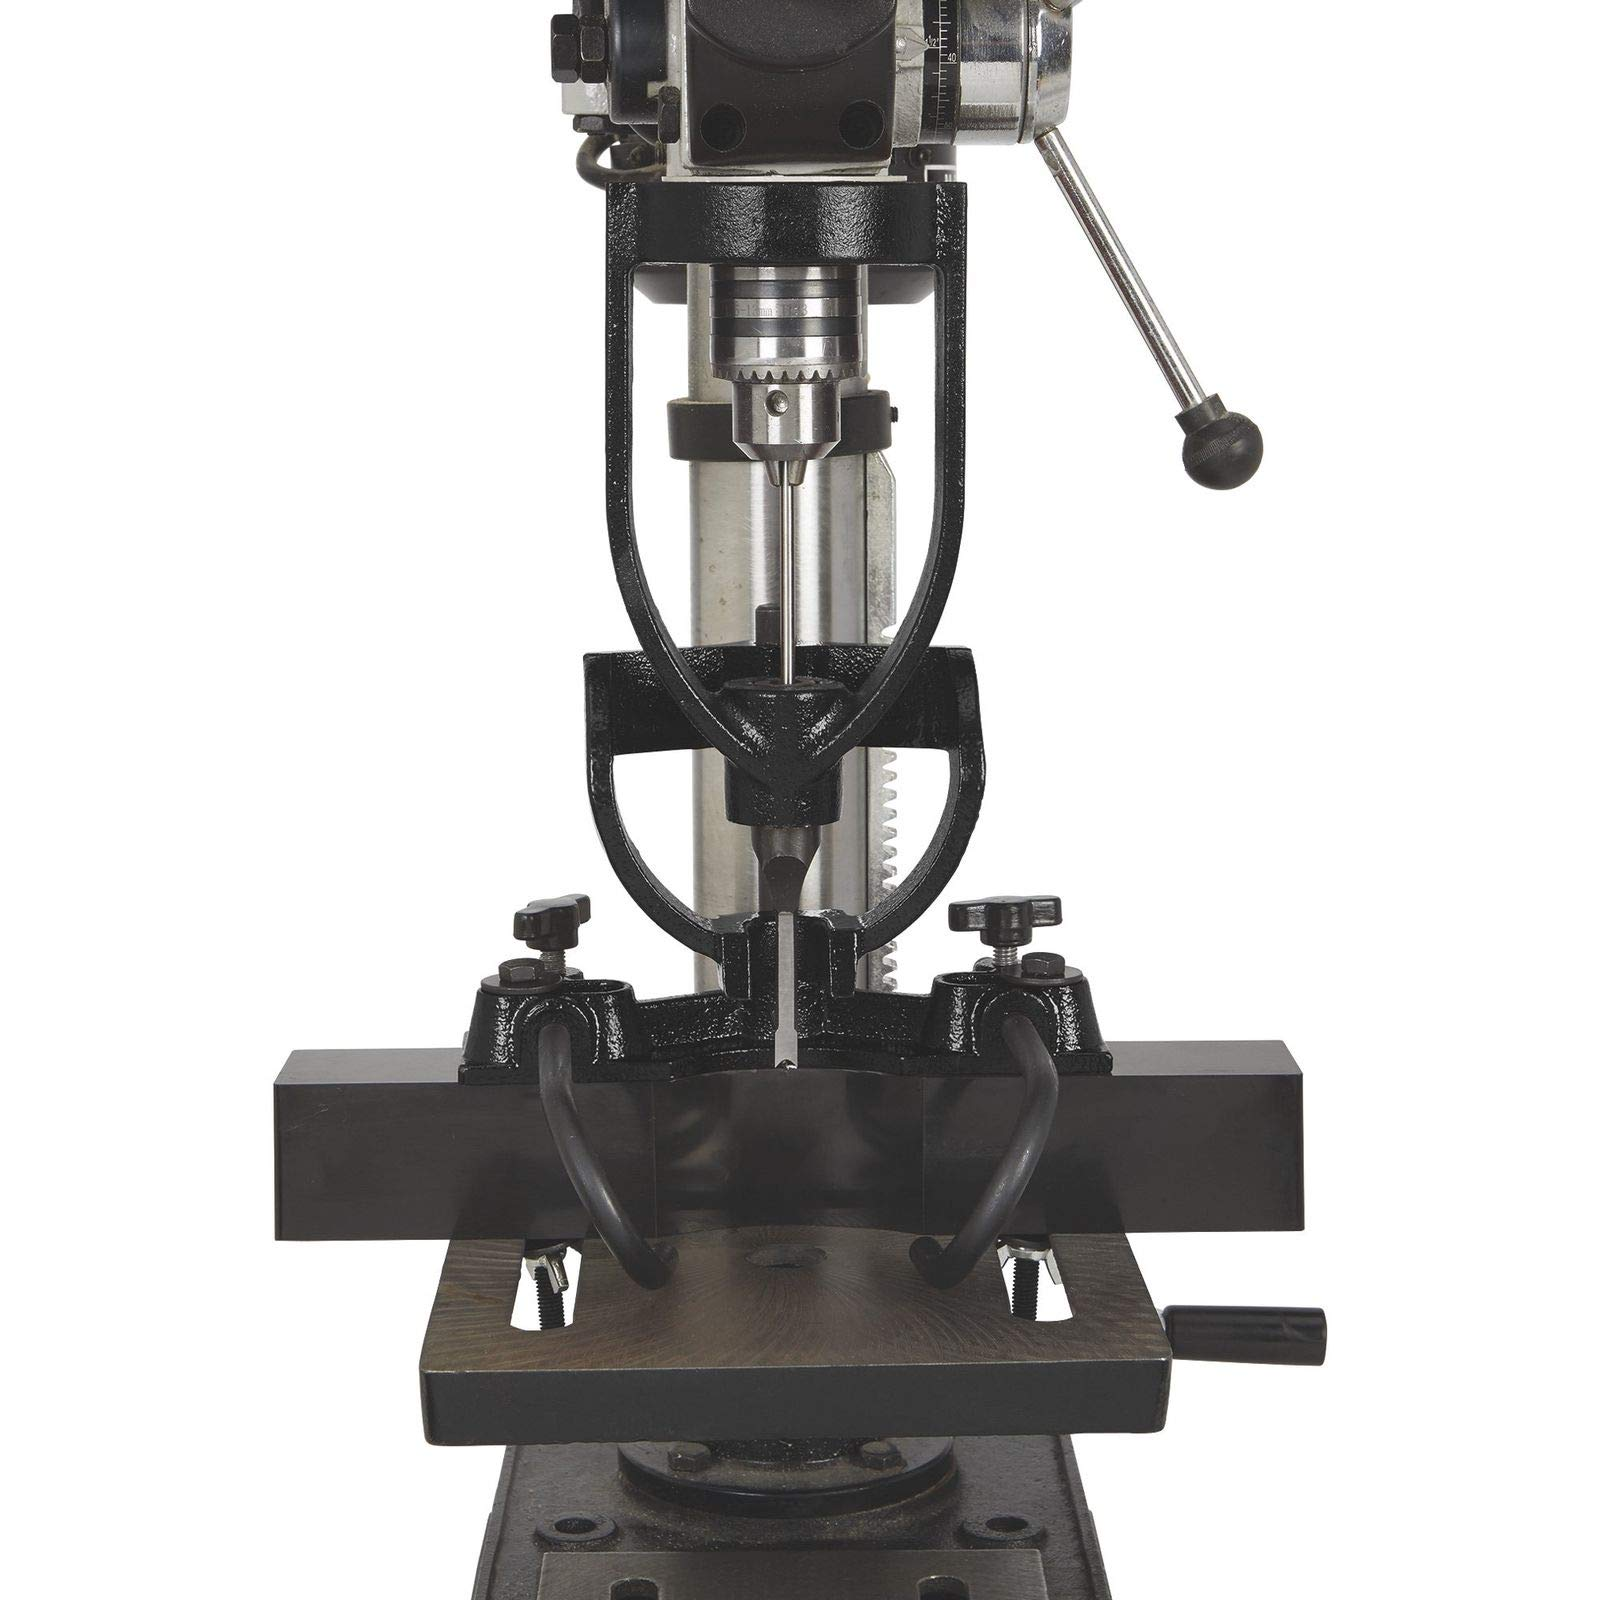 New Mortising Attachment- For Drill Press 52.5mm, 55mm, 58m&60mm-Excellent stability (Only 3 sets left) US-fast ship